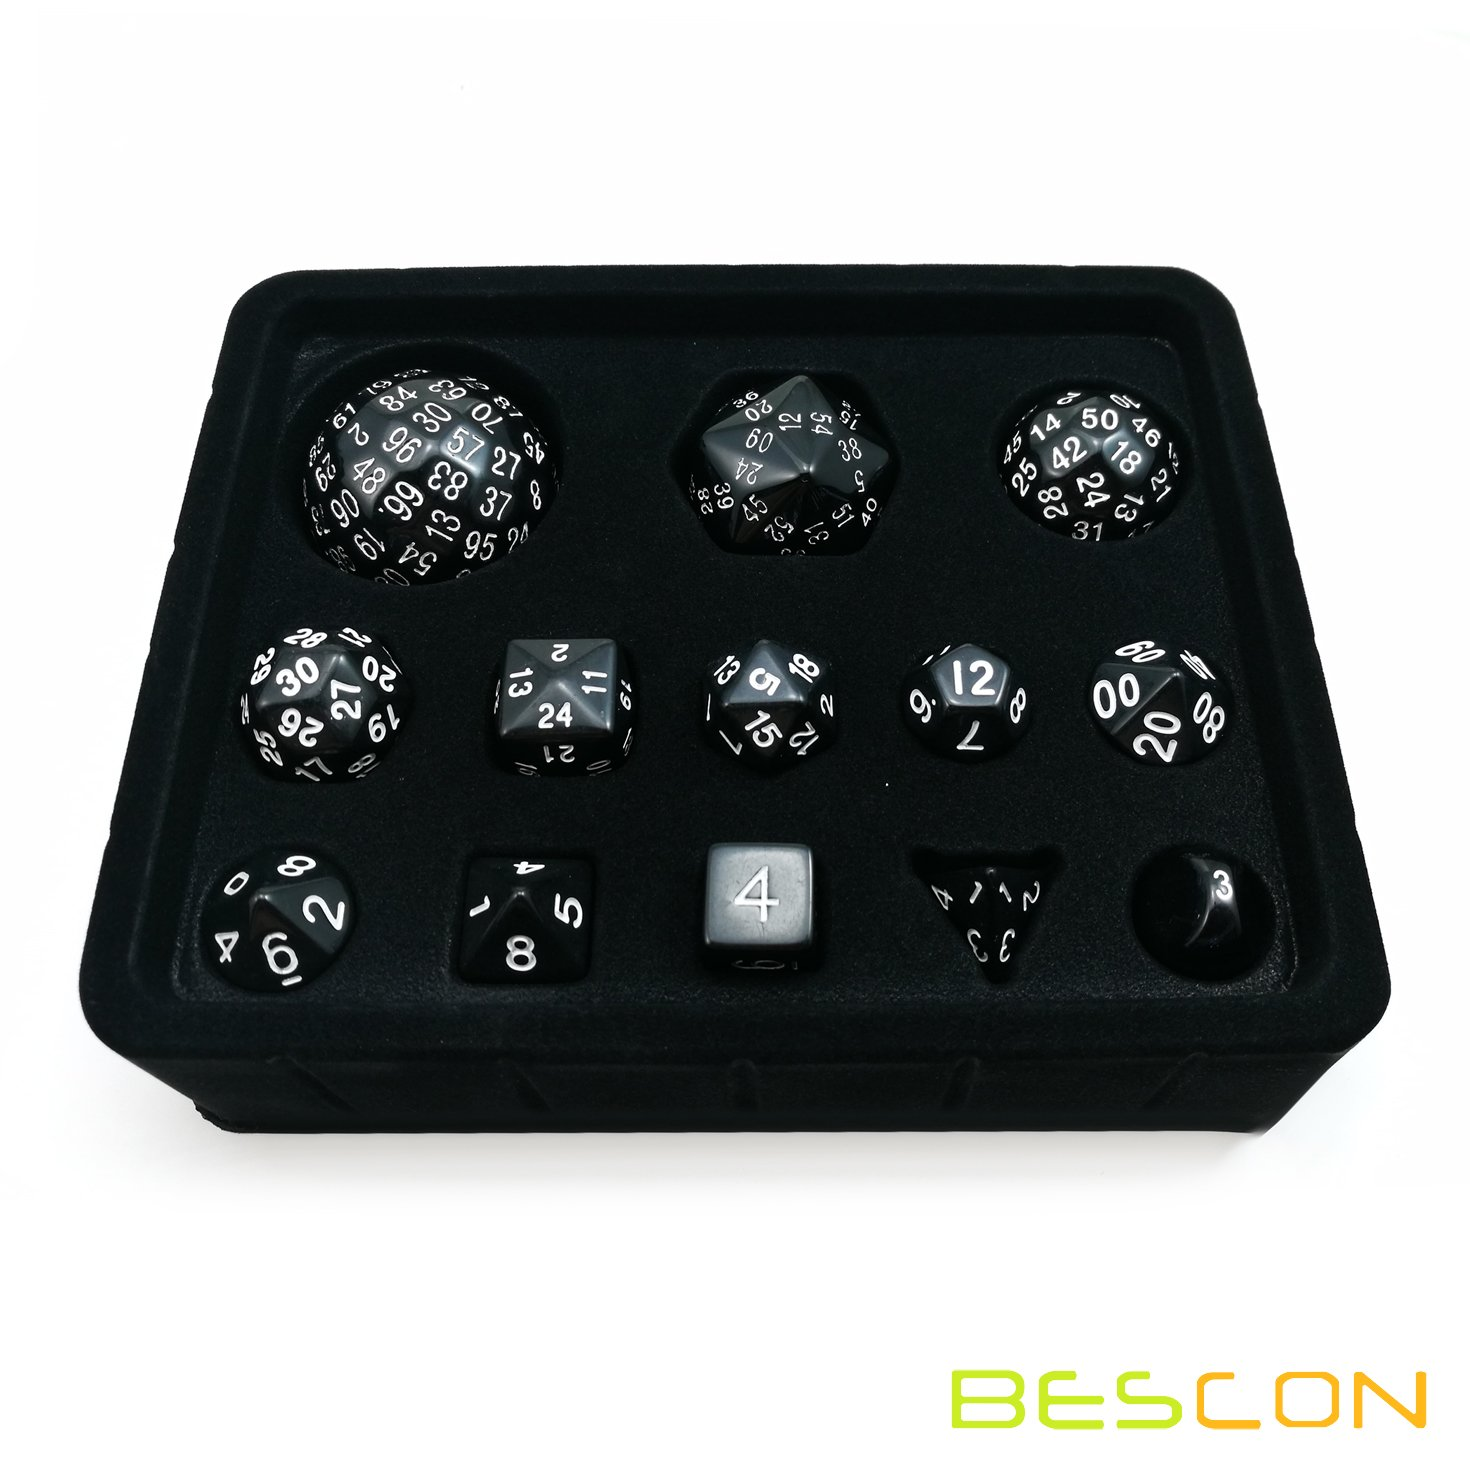 Bescon Complete Polyhedral Dice Set 13pcs D3-D100, 100 Sides Dice Set Opaque Black by BESCON DICE (Image #2)